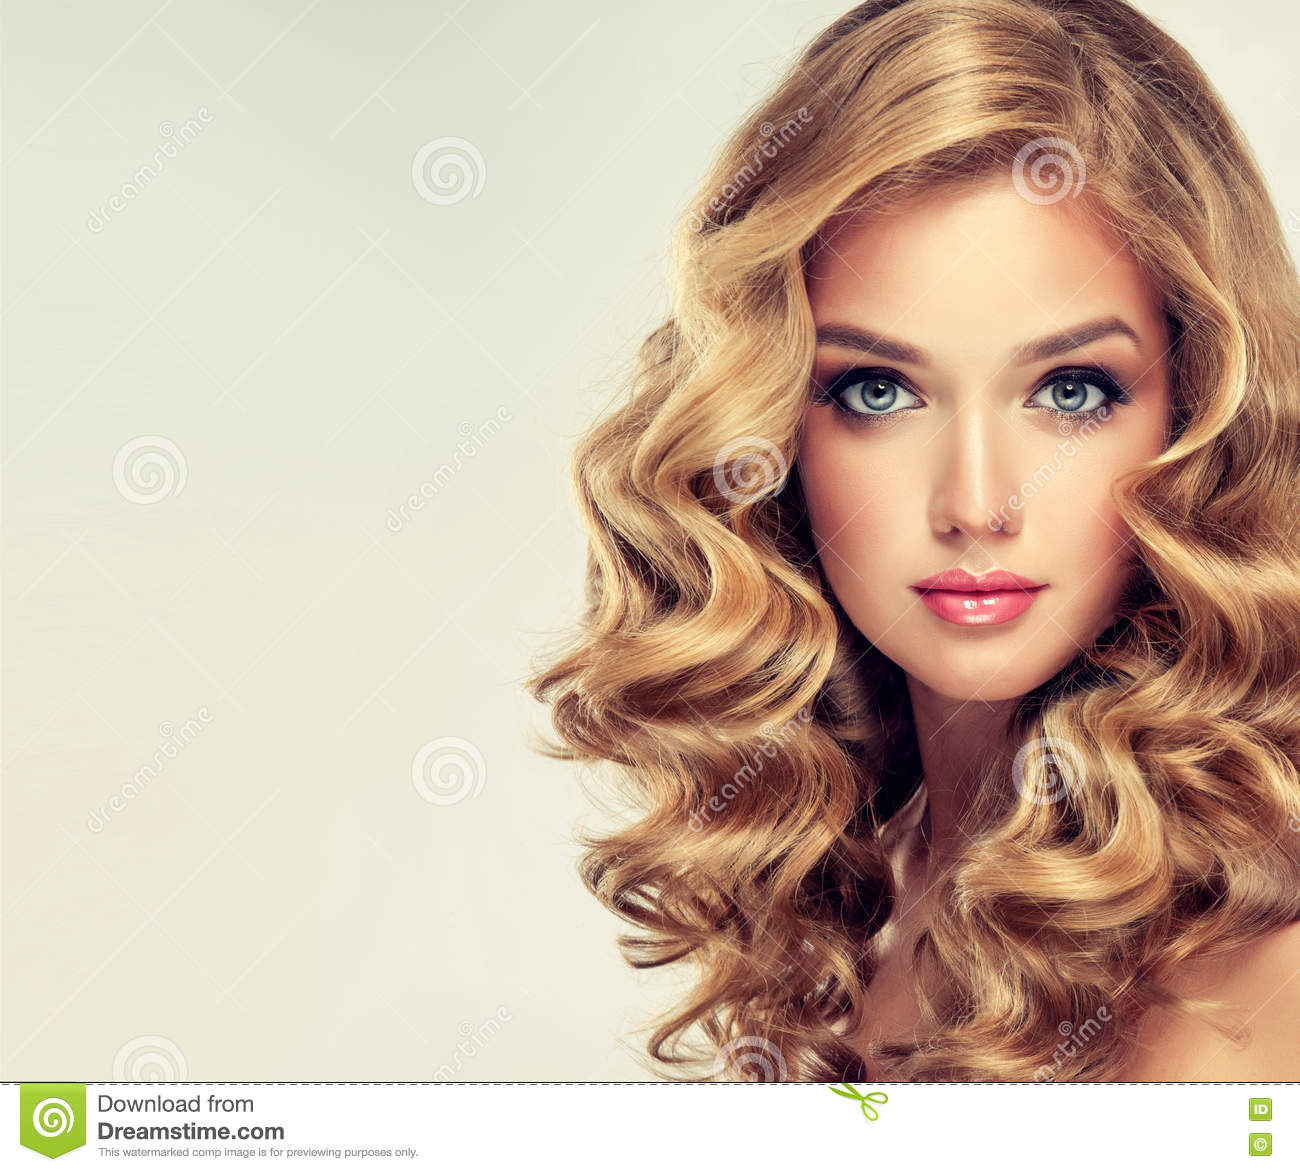 Beautiful Girl With An Elegant Hairstyle Stock Image Image - Girl hairstyle photo download